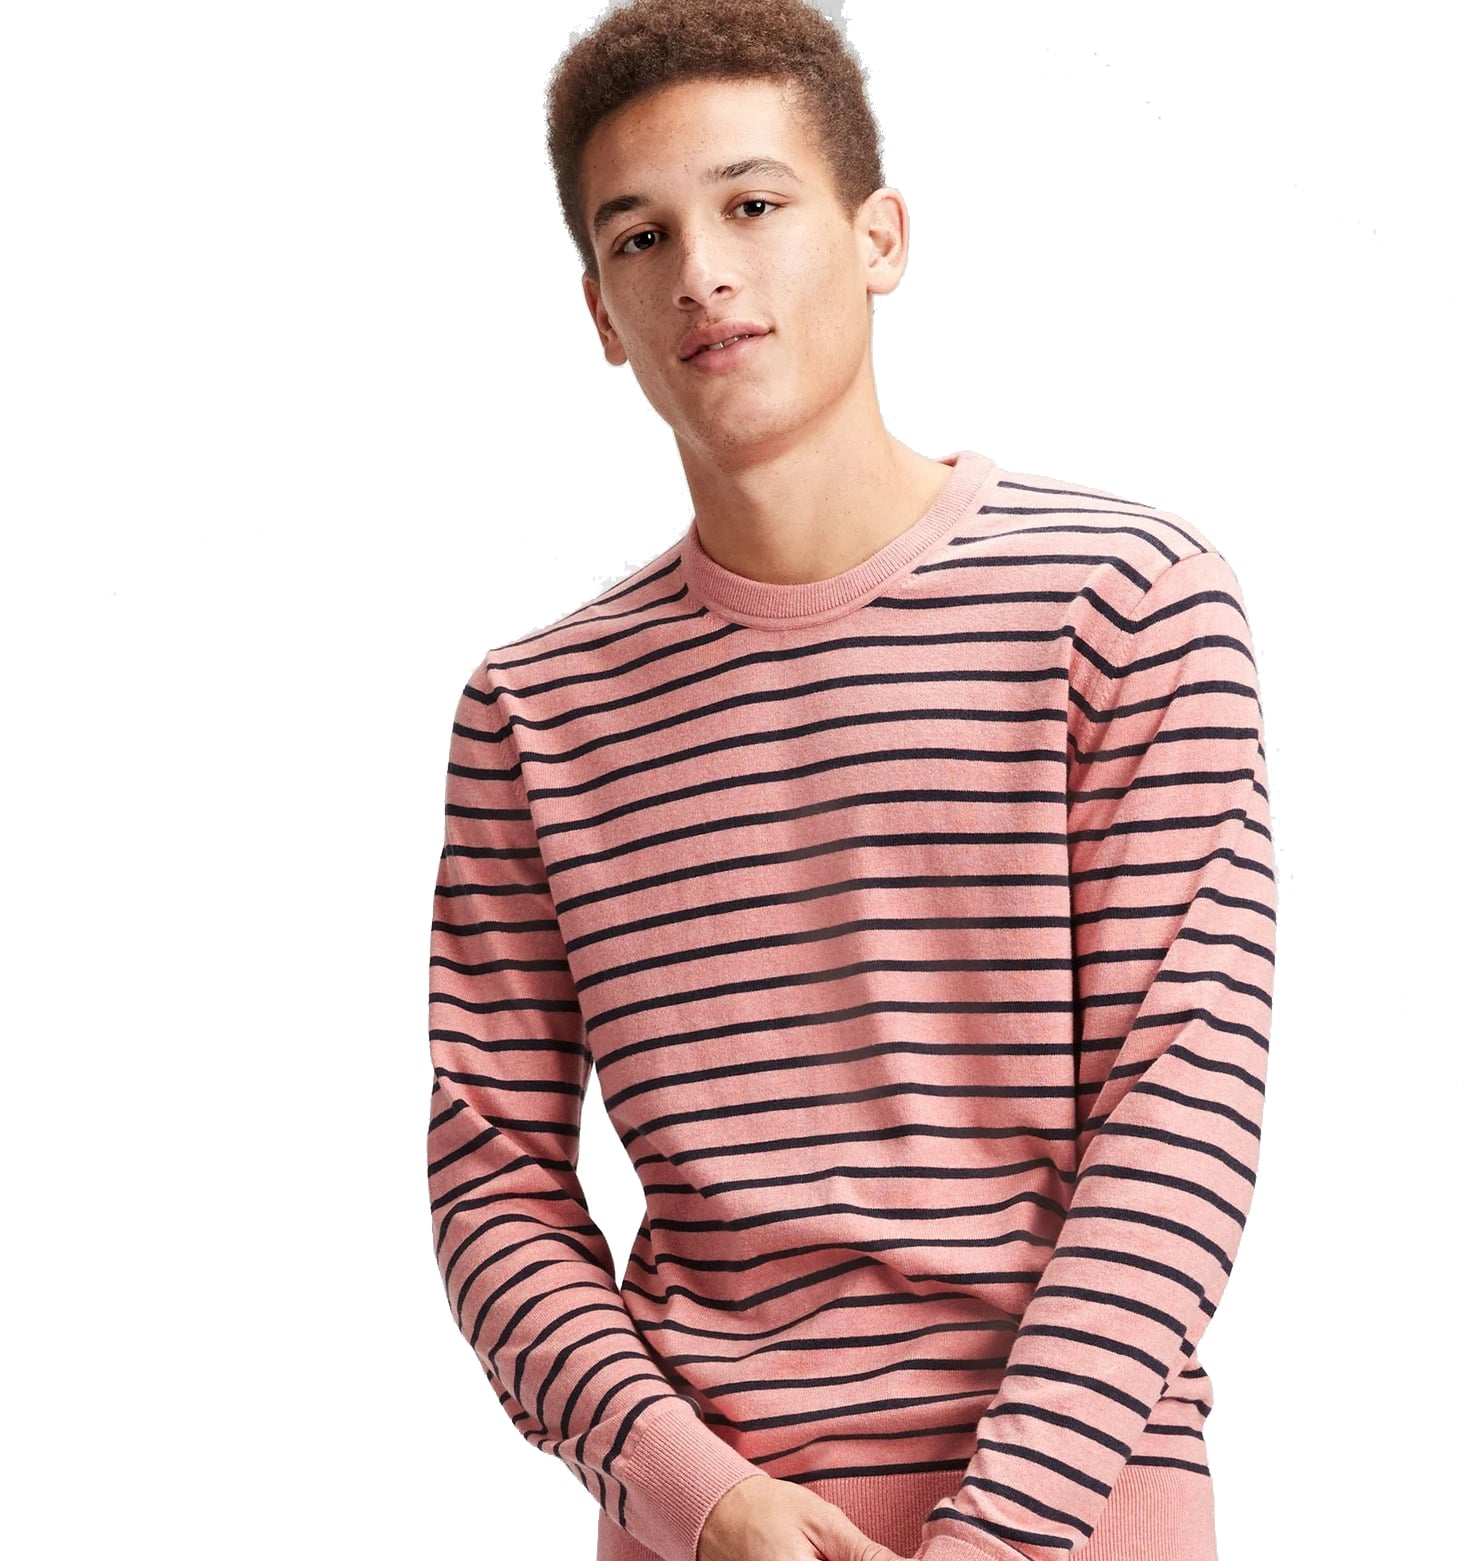 Men's 100% Cotton GAP Crewneck Sweaters from $8.10 + Select Store Pickup / FS from $27+